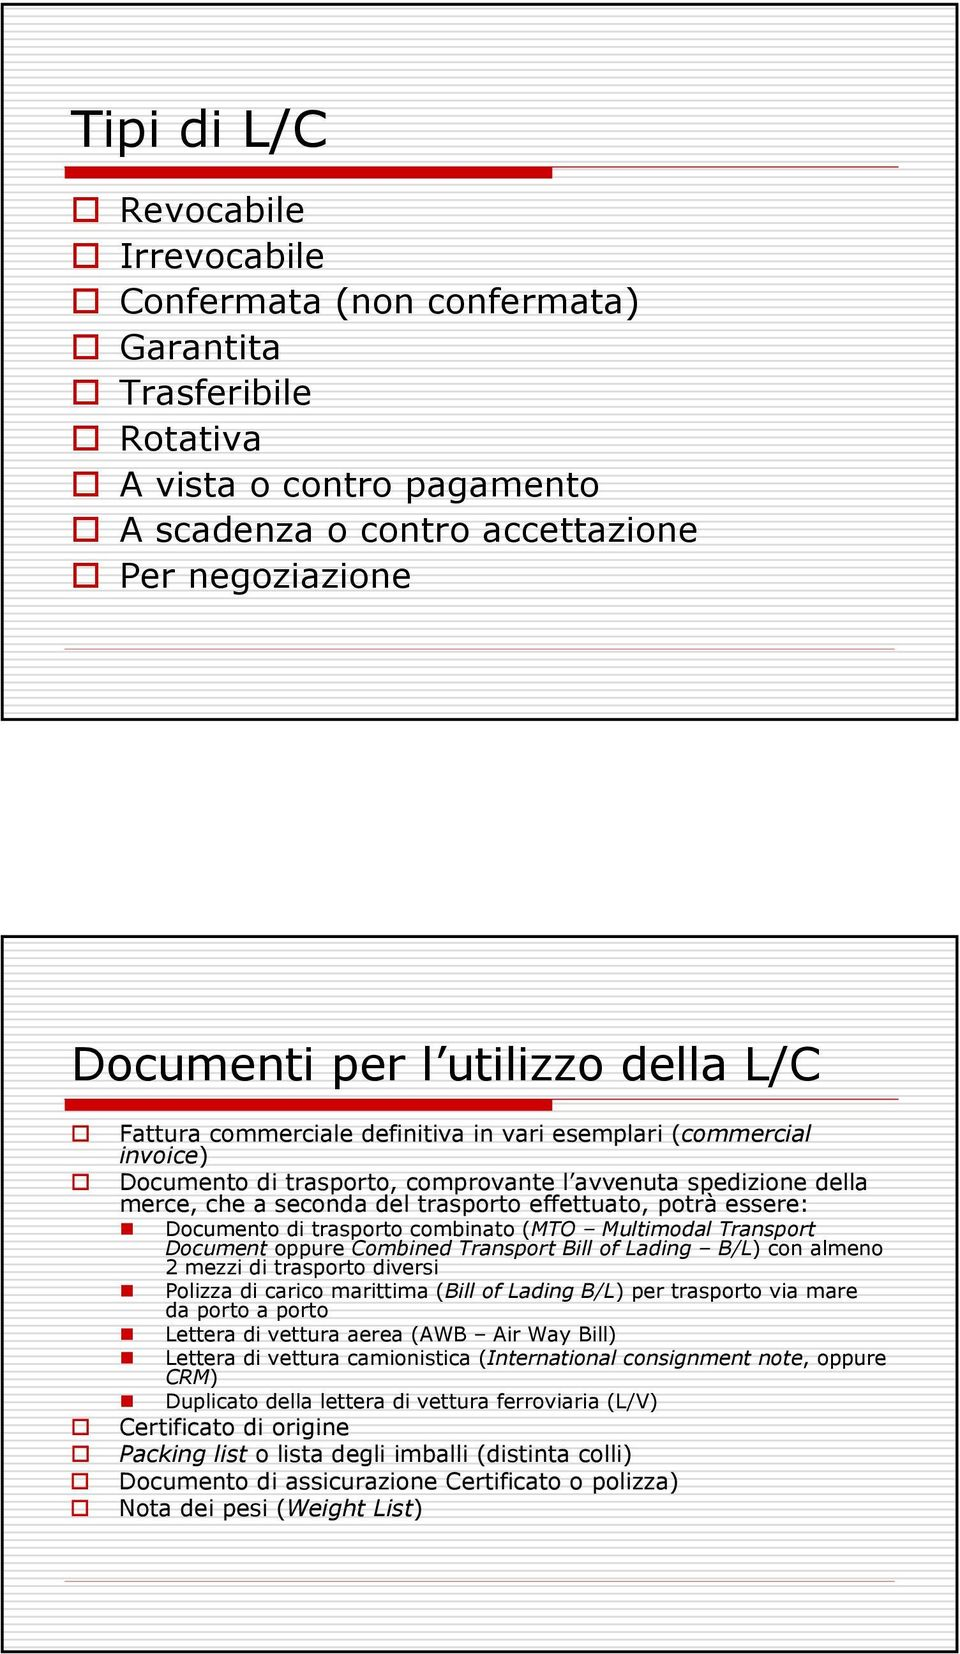 essere: Documento di trasporto combinato (MTO Multimodal Transport Document oppure Combined Transport Bill of Lading B/L) con almeno 2 mezzi di trasporto diversi Polizza di carico marittima (Bill of